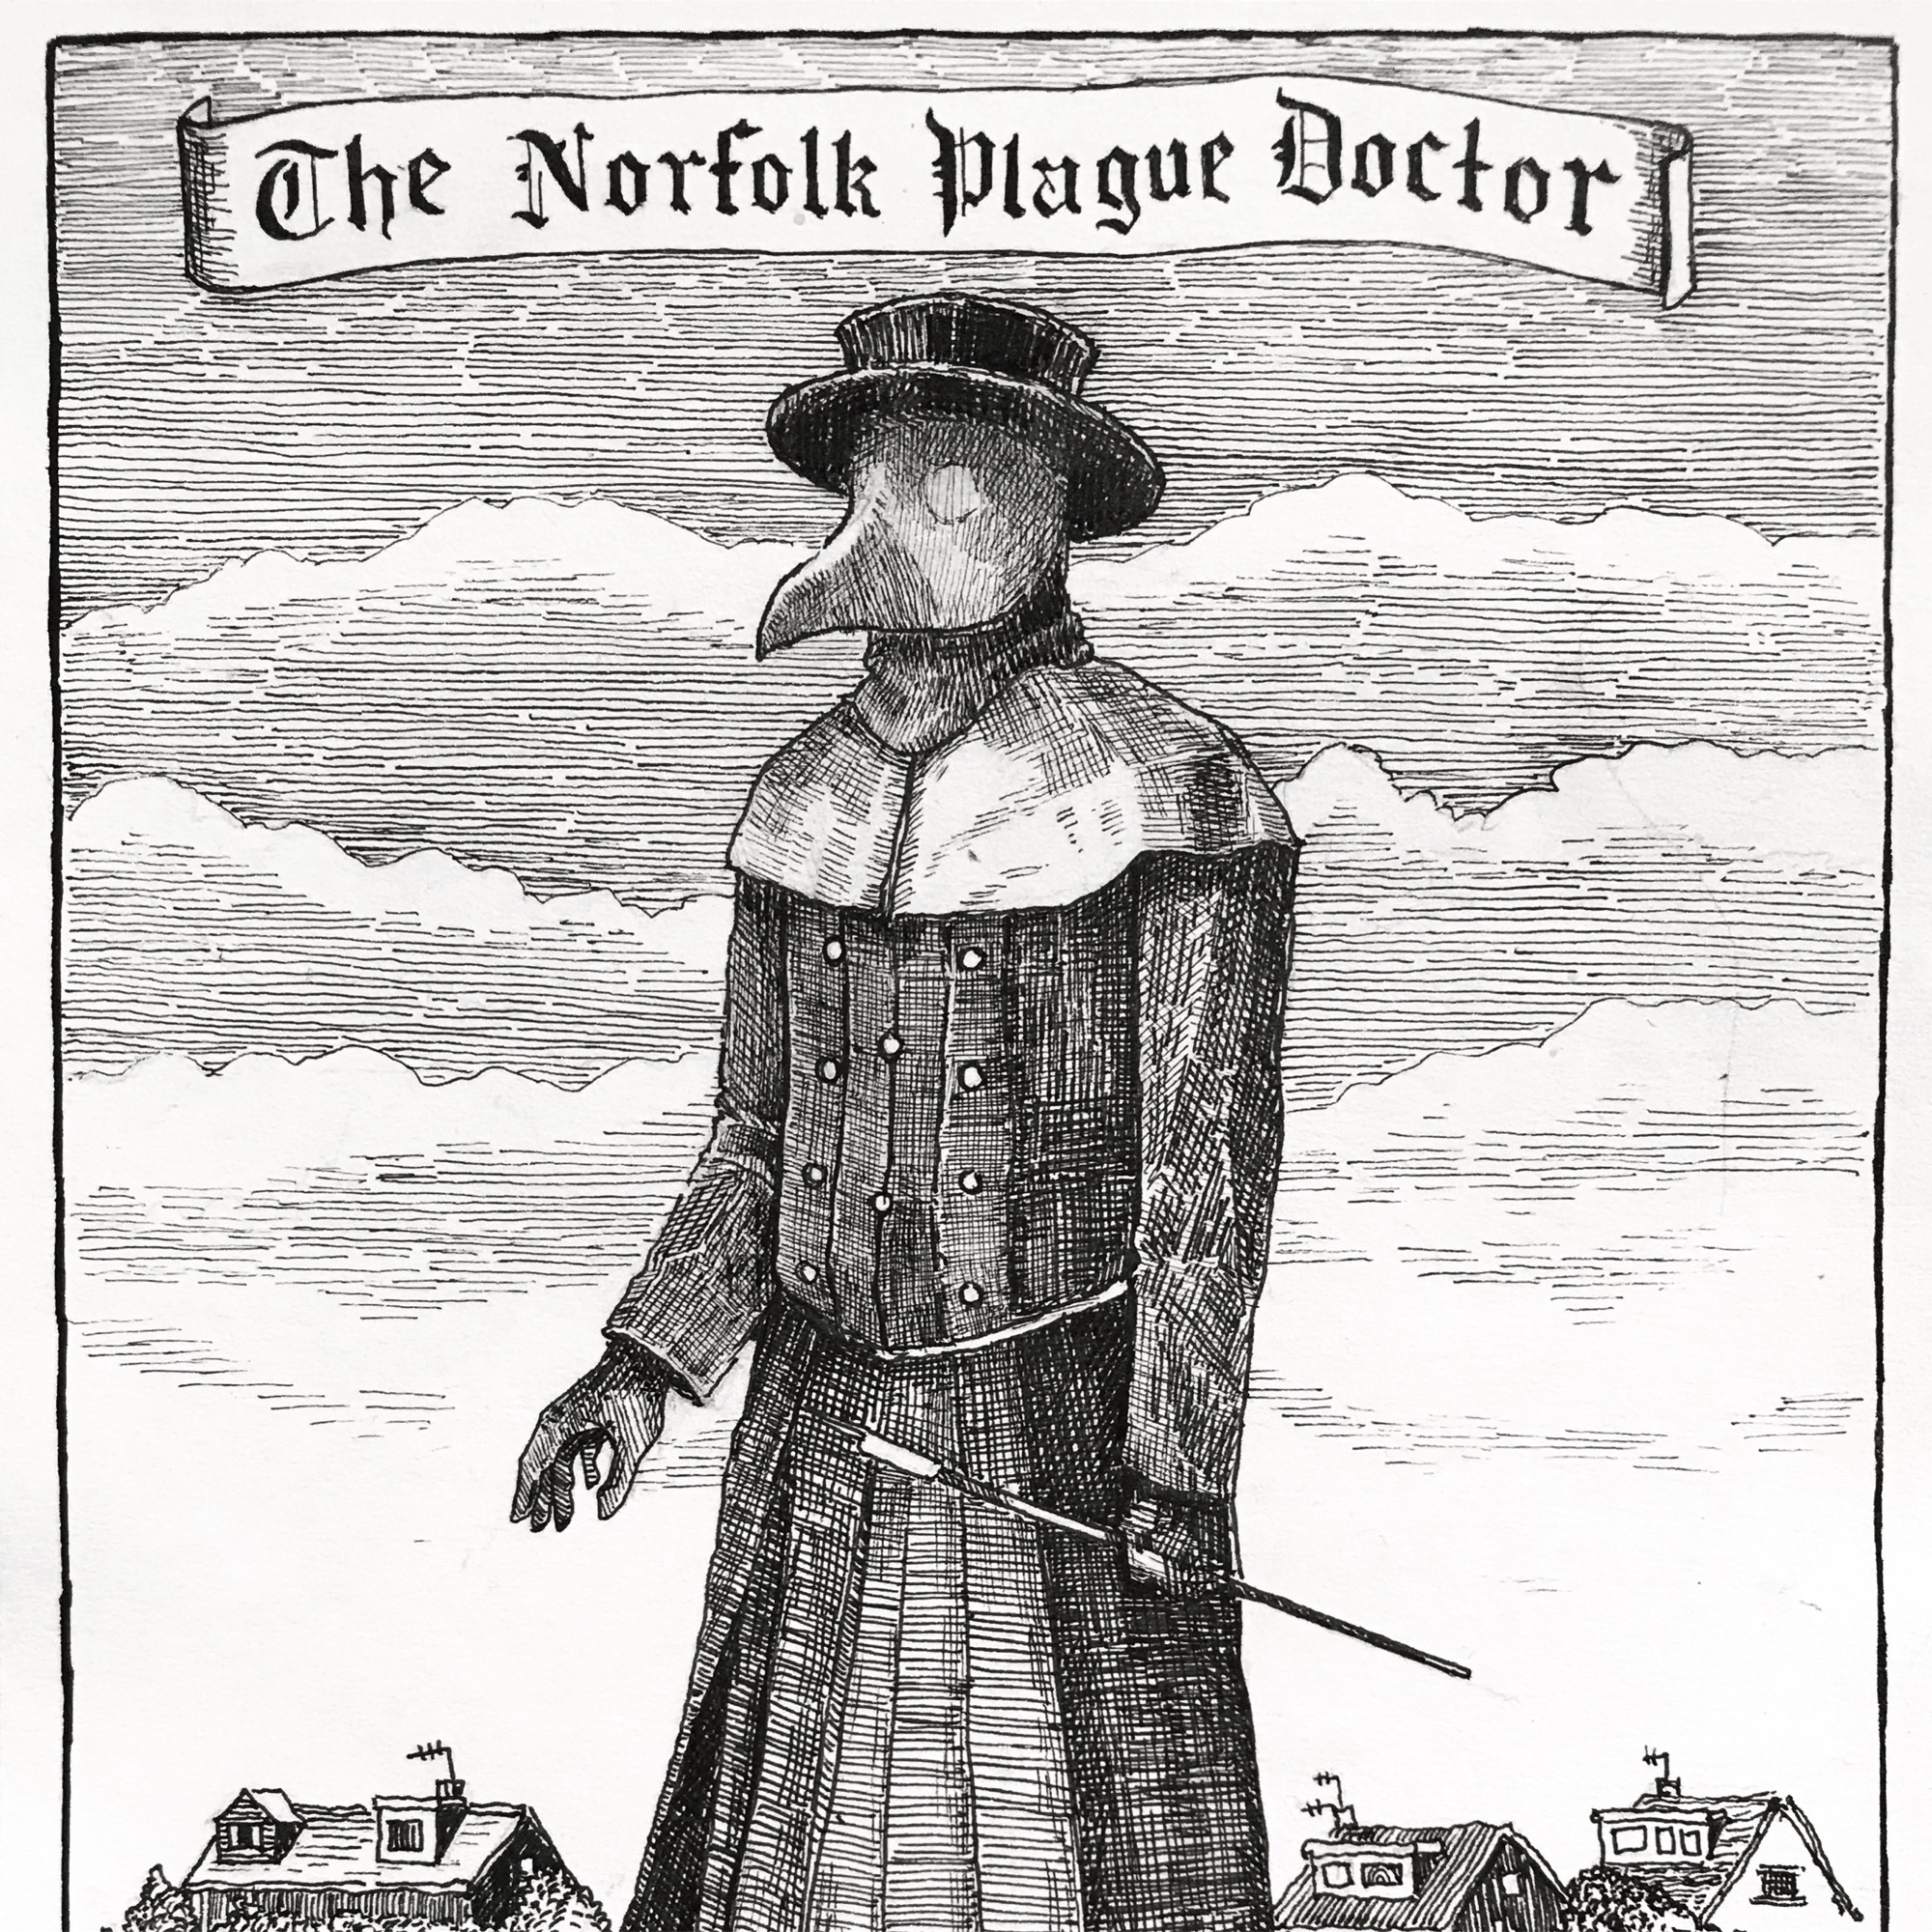 The Norfolk Plague Doctor